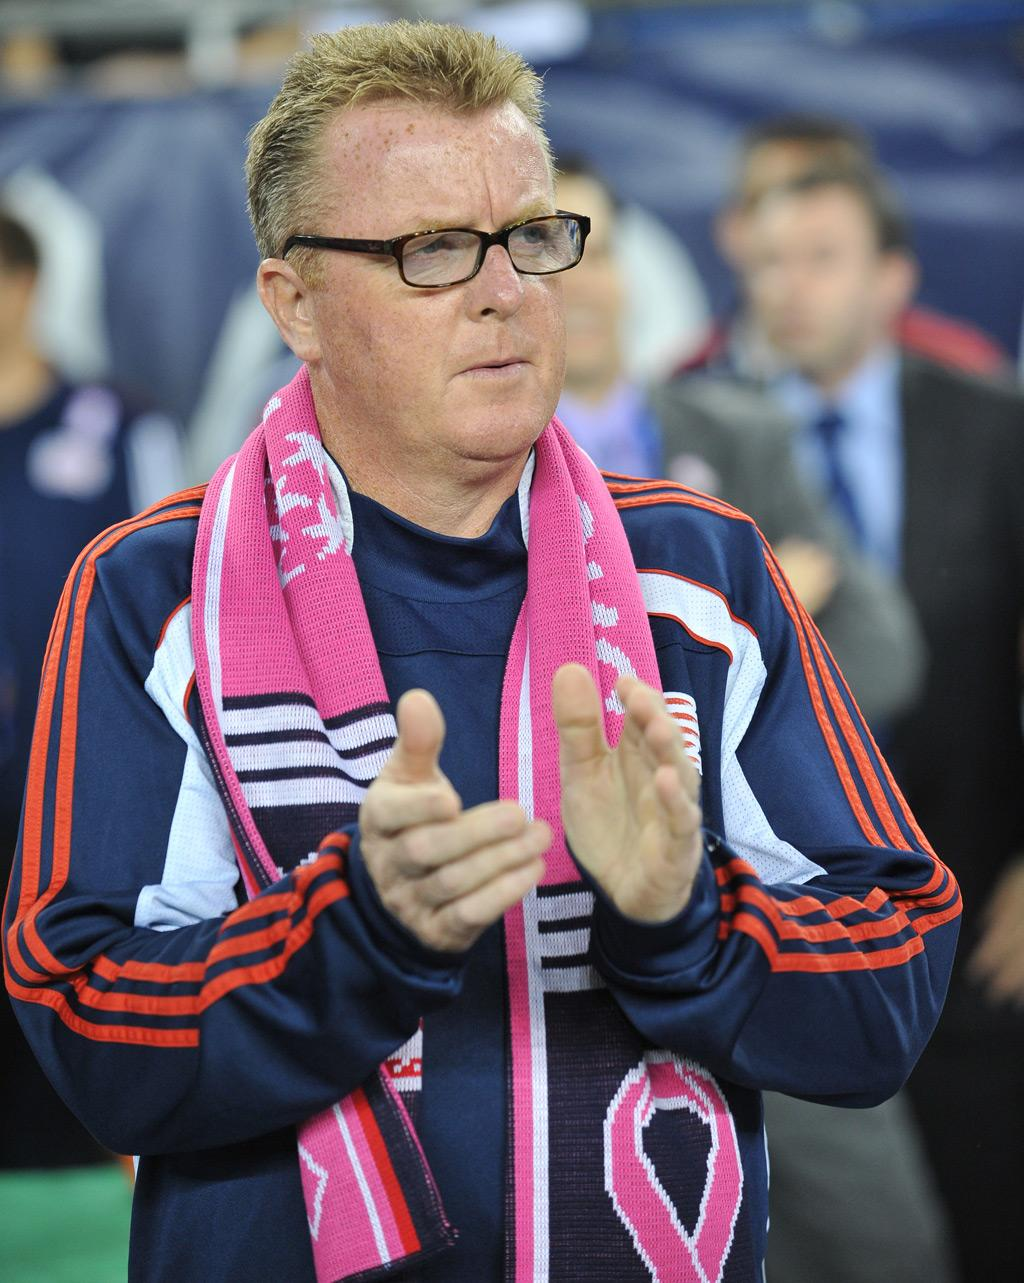 Steve Nicol dons the pink scarf